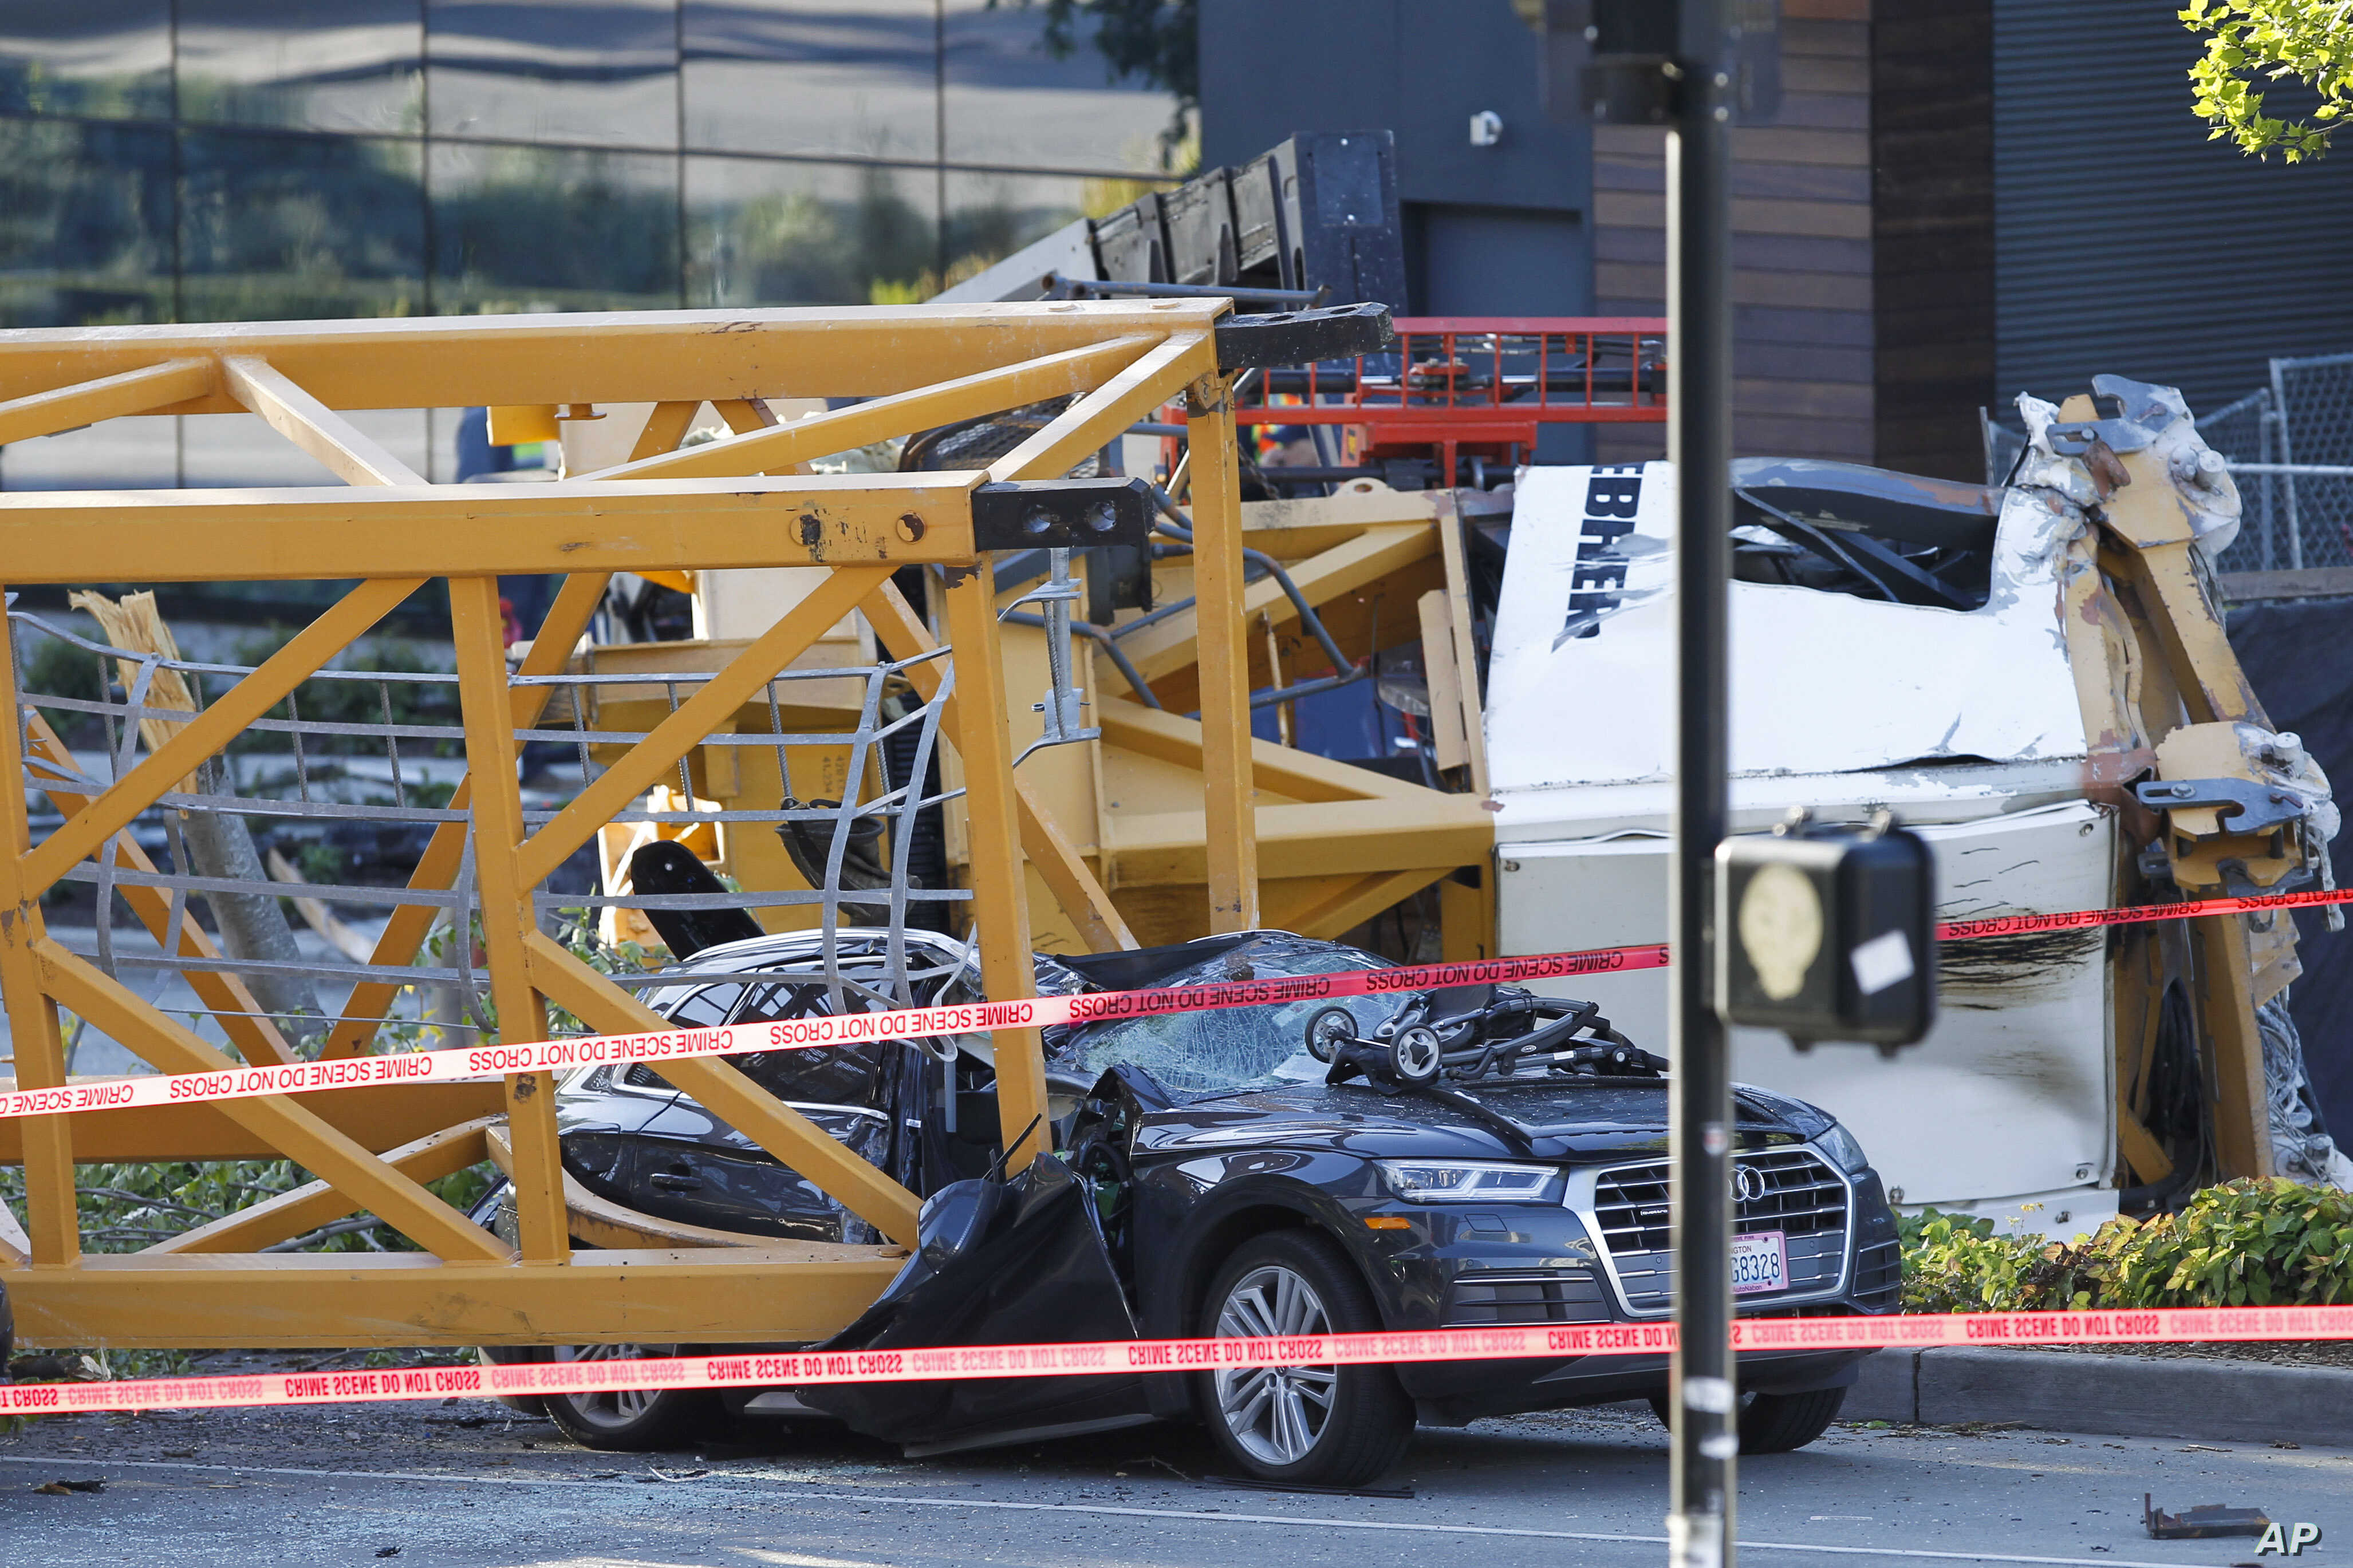 Emergency crews work at the scene of a construction crane collapse, April 27, 2019. The crane collapsed near the intersection of Mercer Street and Fairview Avenue pinning cars underneath it near Interstate 5.